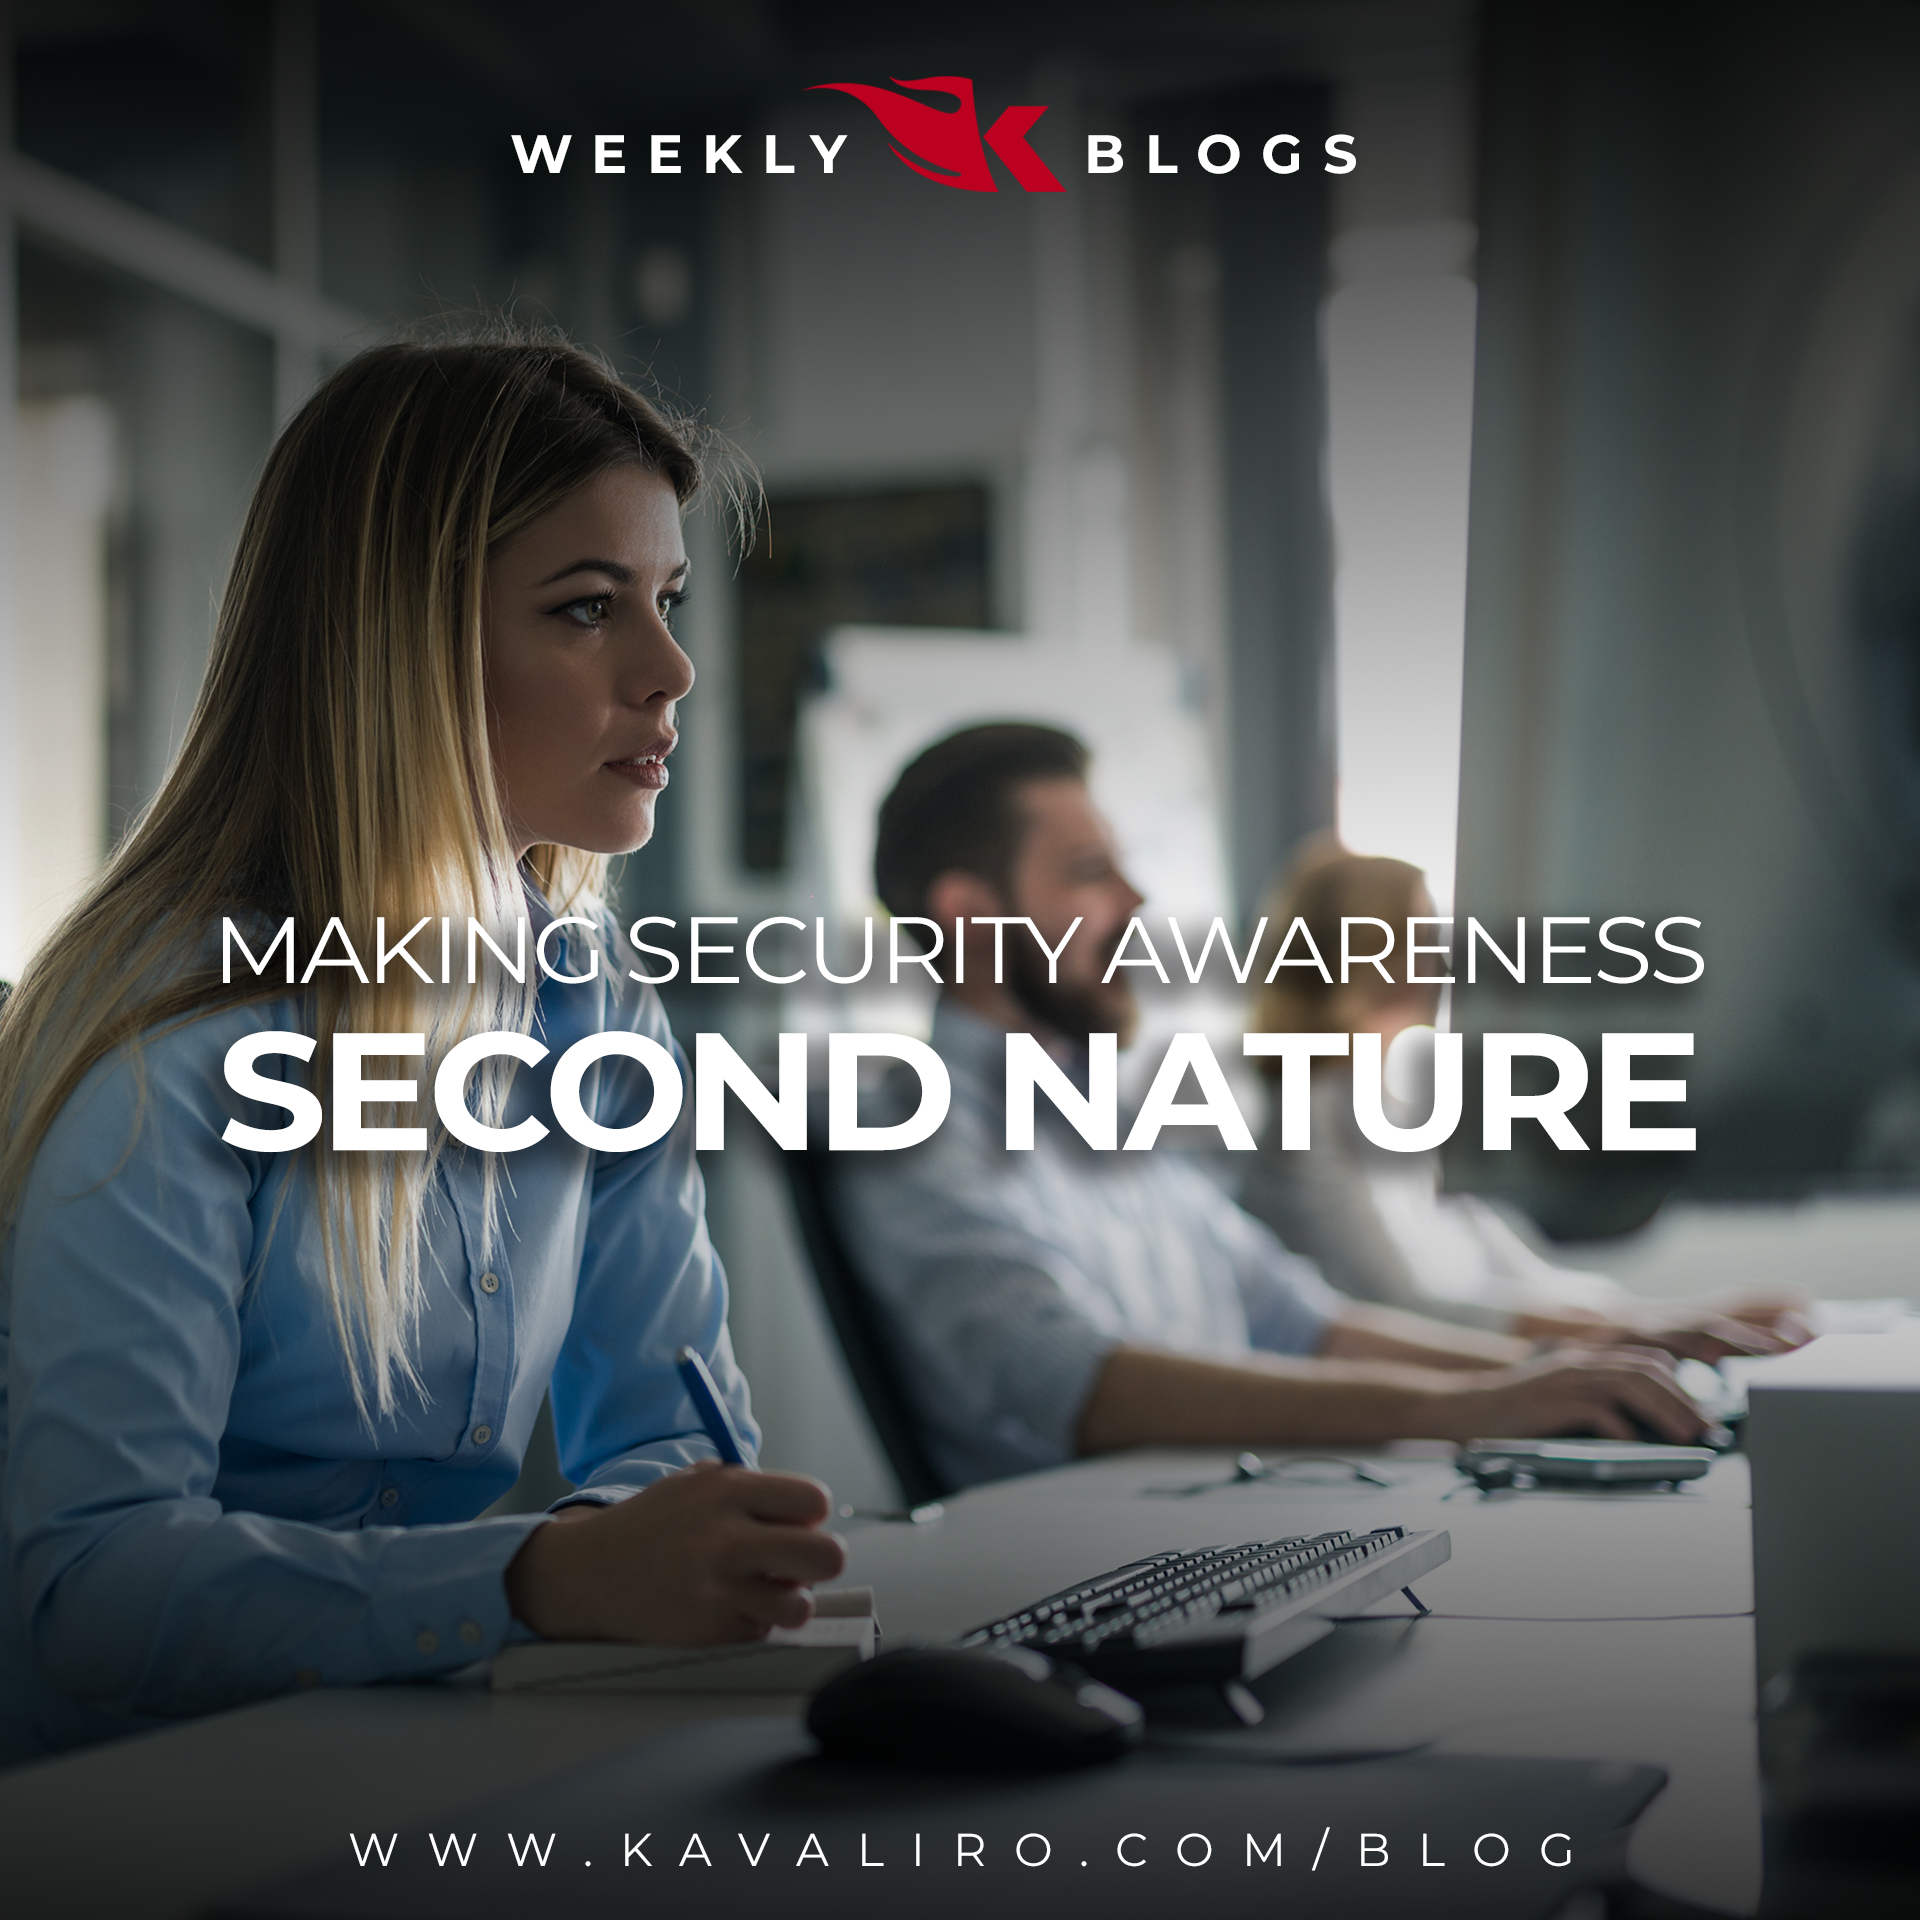 Making Security Awareness Second Nature